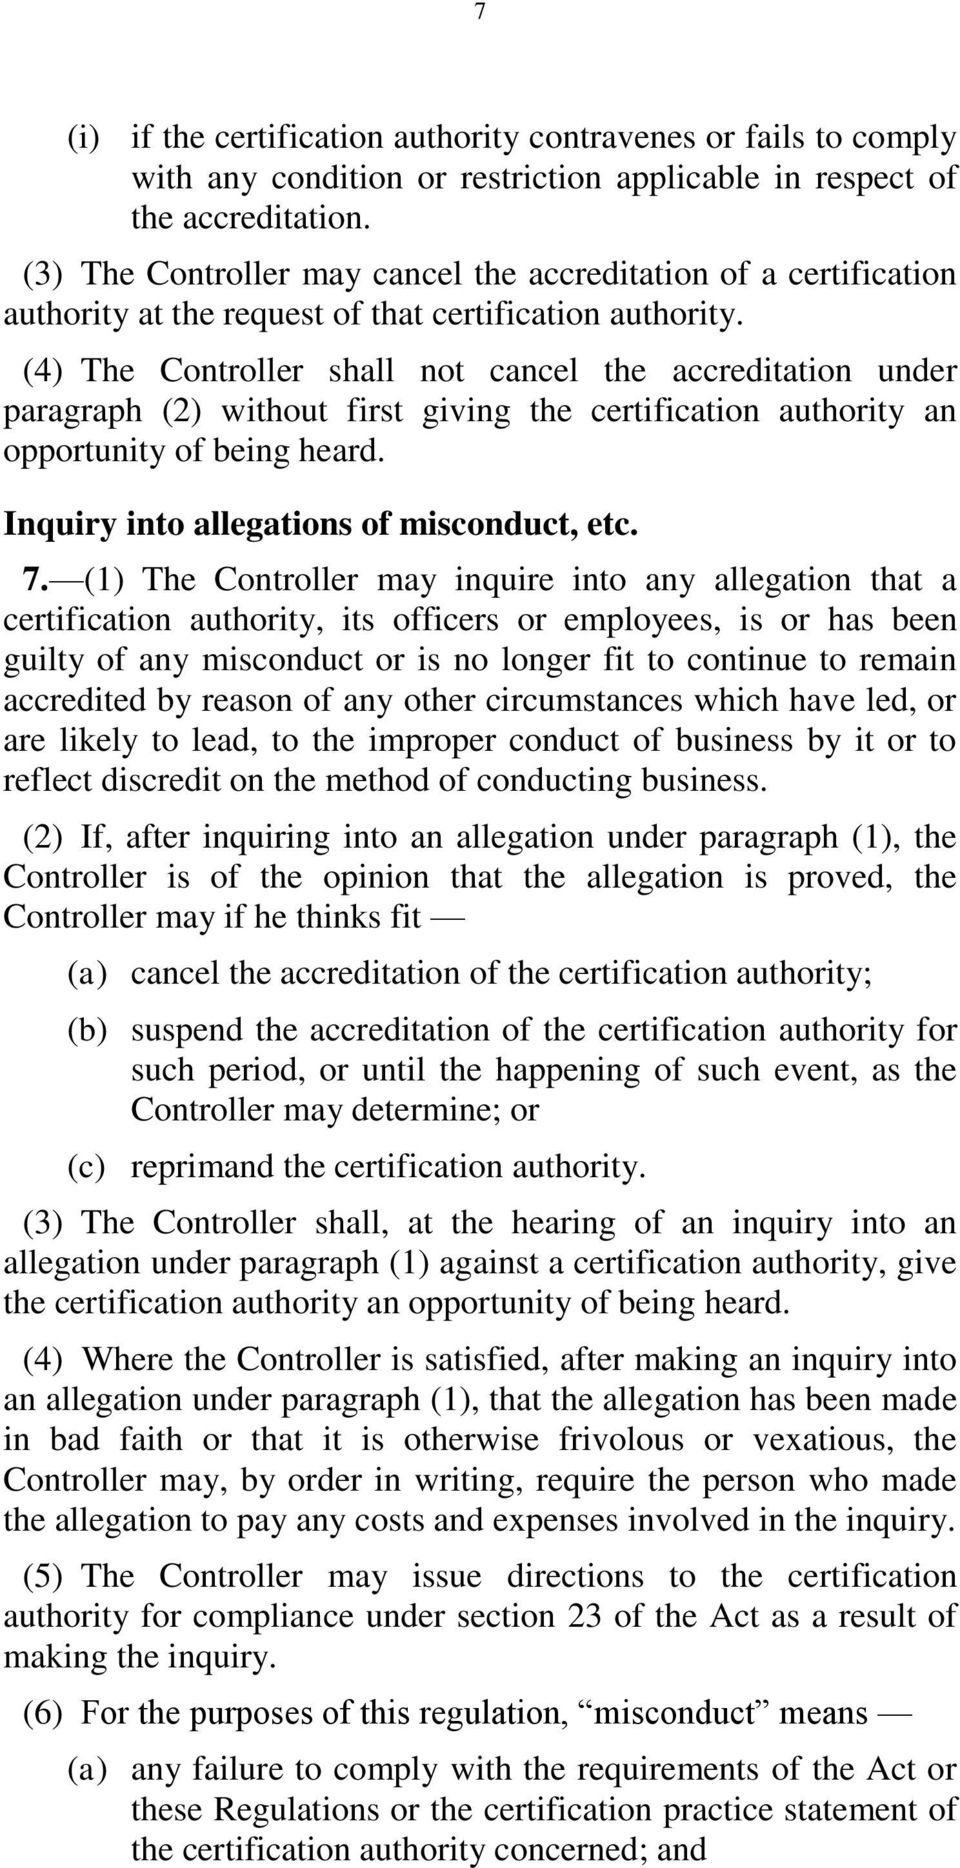 (4) The Controller shall not cancel the accreditation under paragraph (2) without first giving the certification authority an opportunity of being heard. Inquiry into allegations of misconduct, etc.